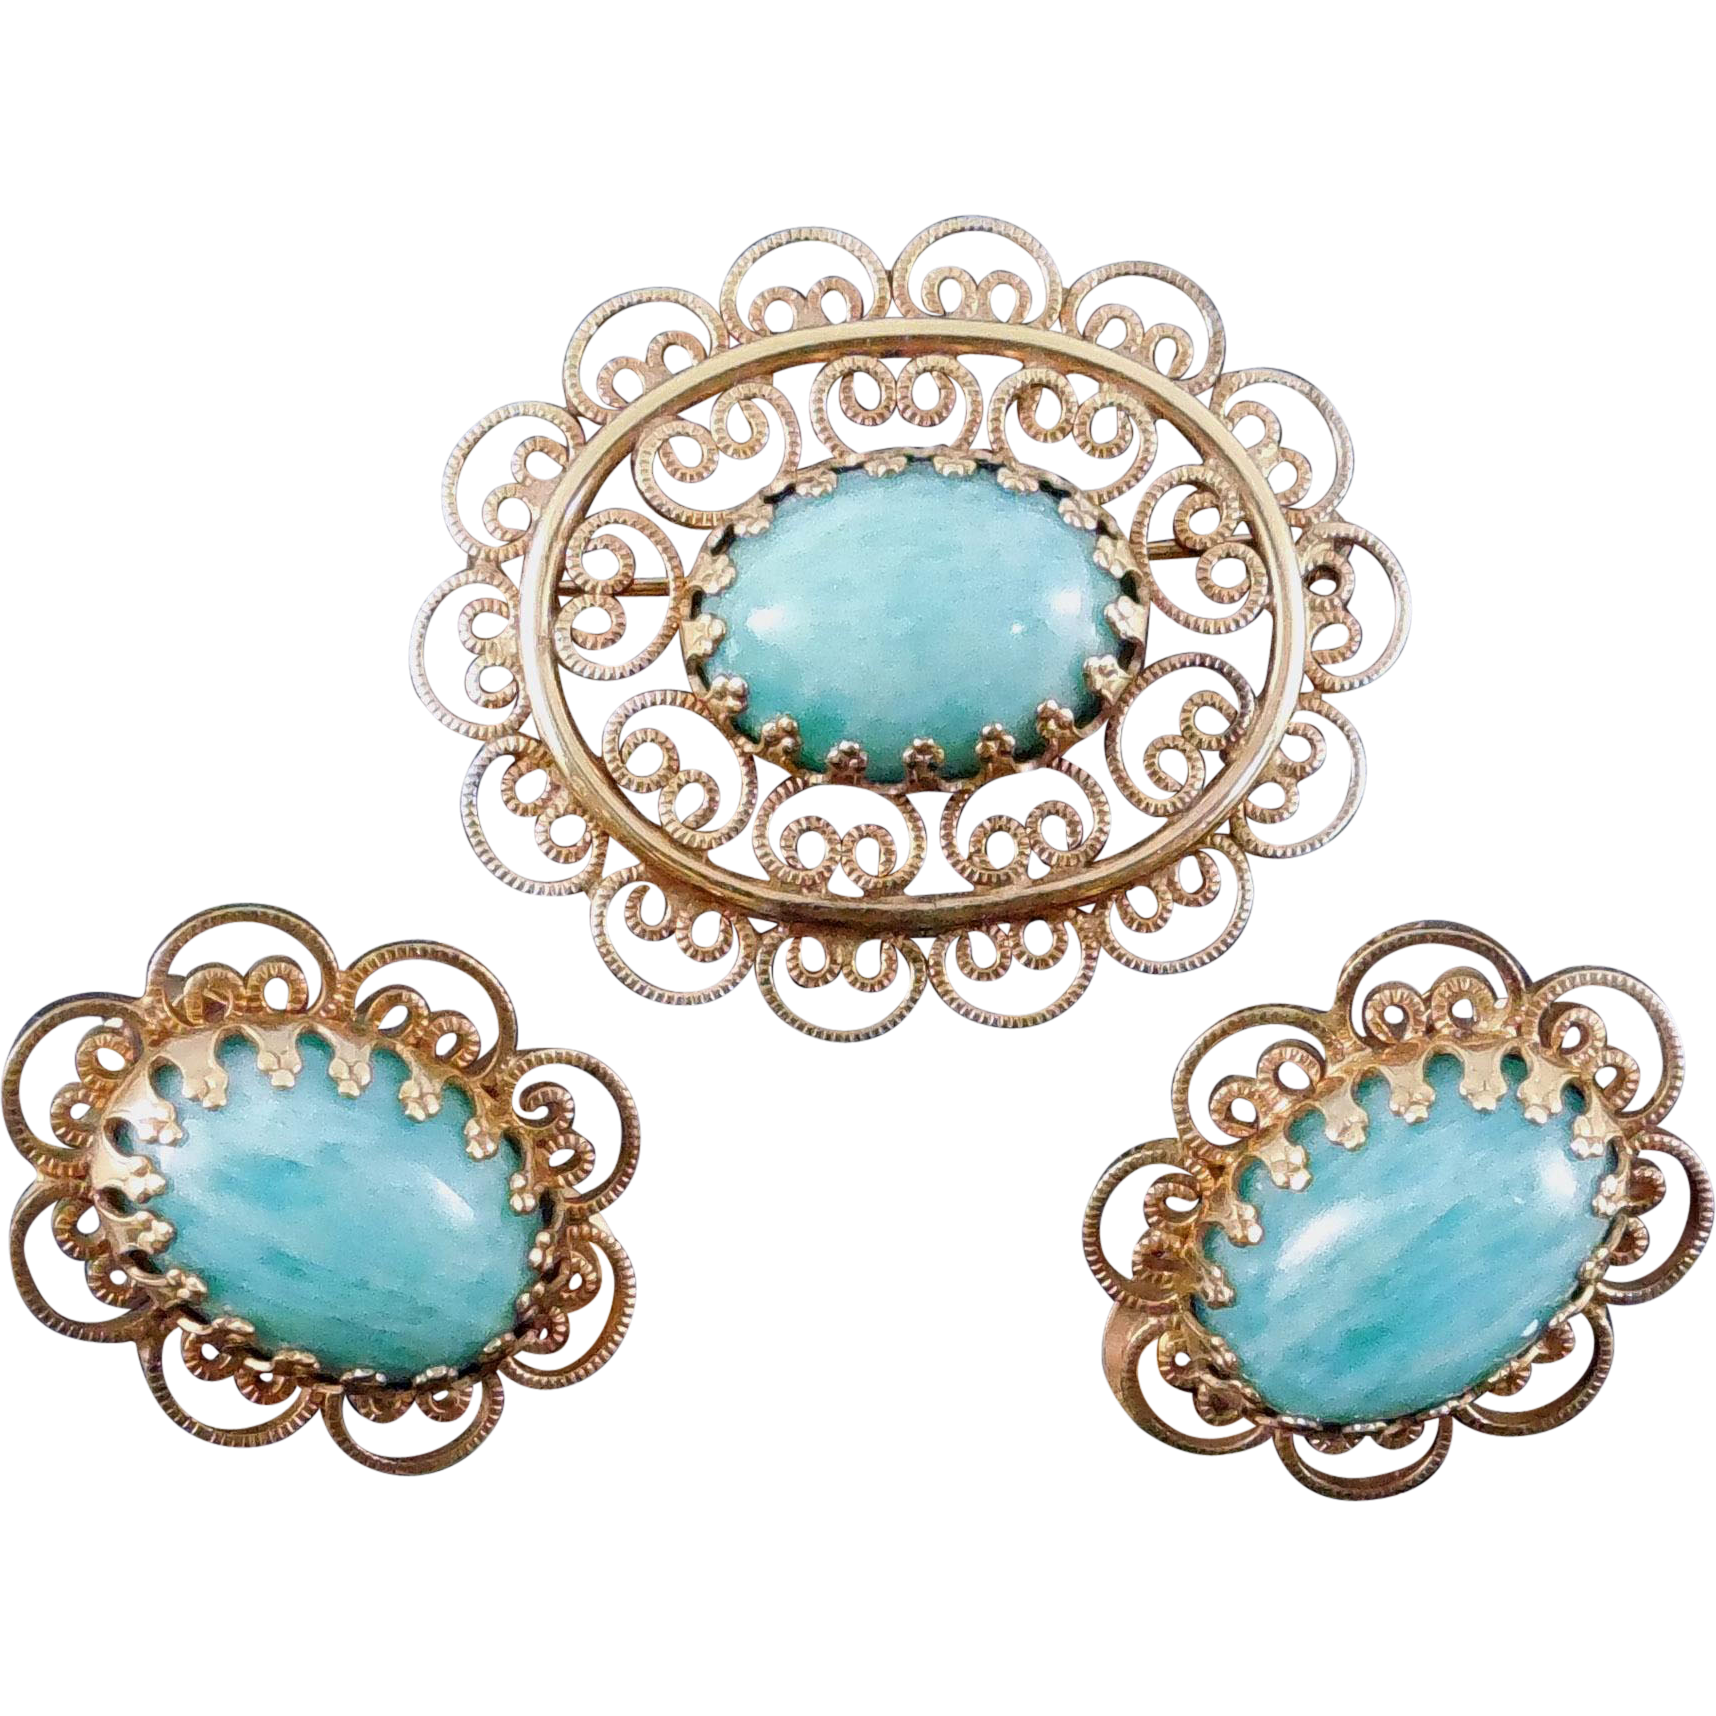 Signed Winard Brooch & Earrings Set 12K GF With Mottled Green Glass or Stone